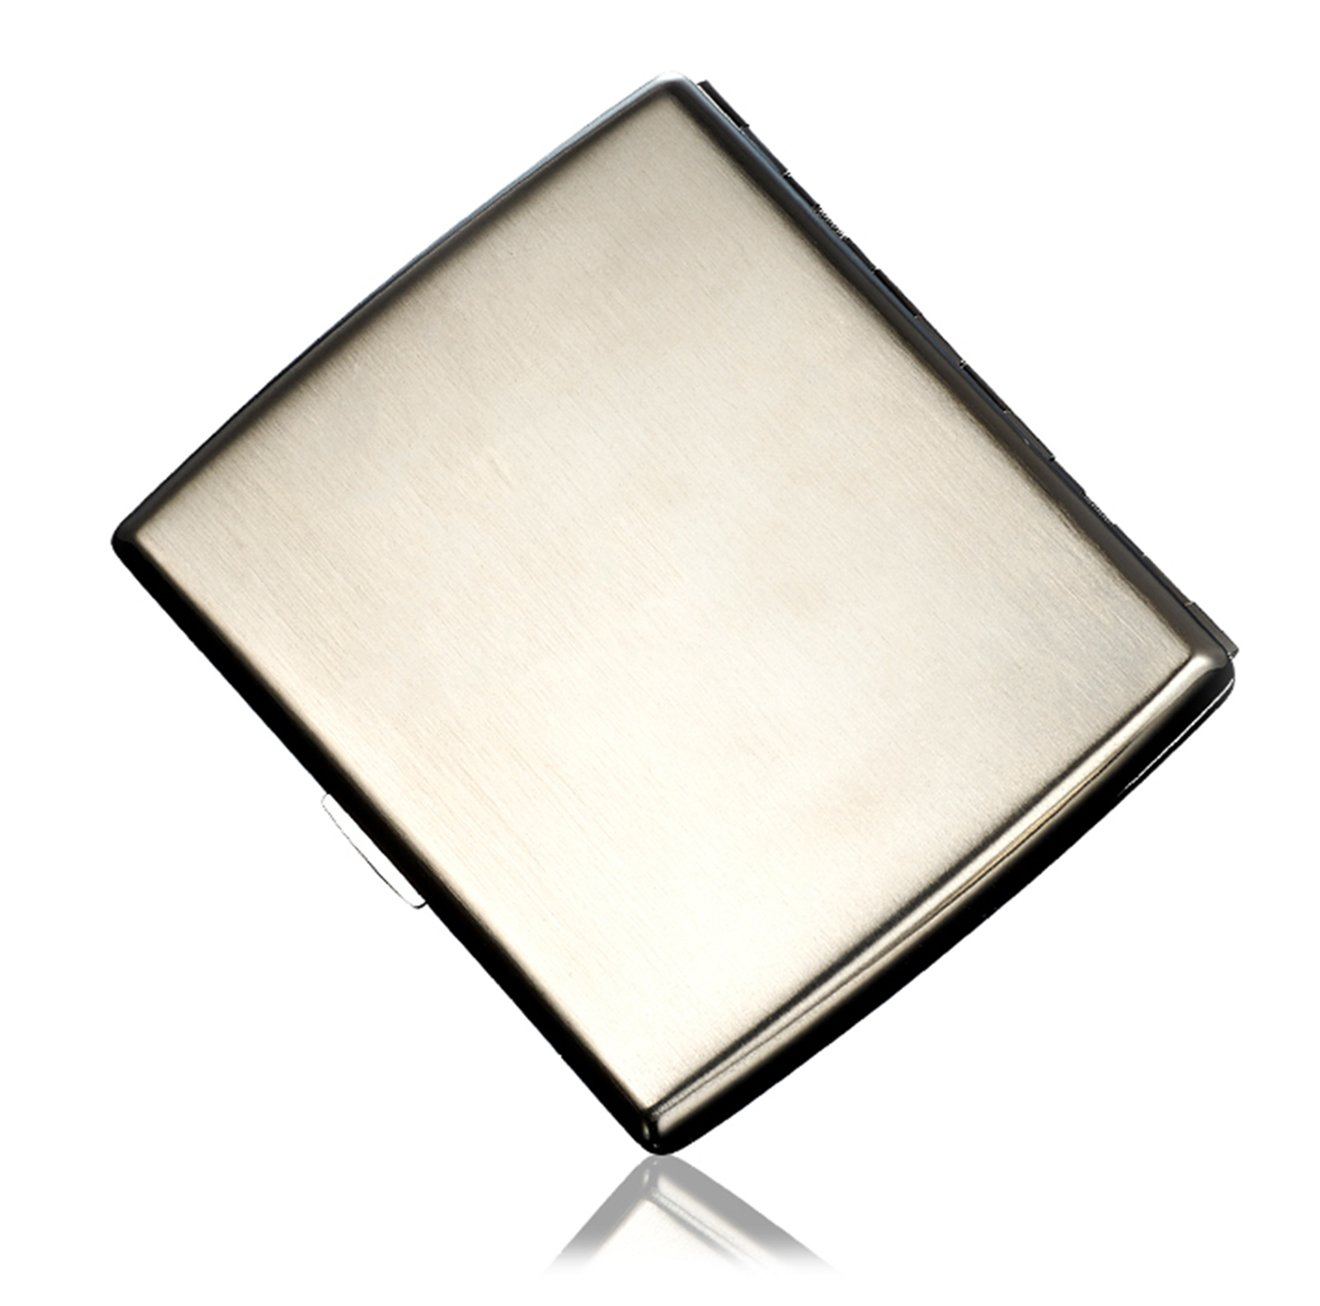 CaLeQi High-Grade Stainless Steel Cigarette Case, Nickel Plating Wire Drawing, Holds 20 Cigarettes.(With Branded Gift Box) (Curved)